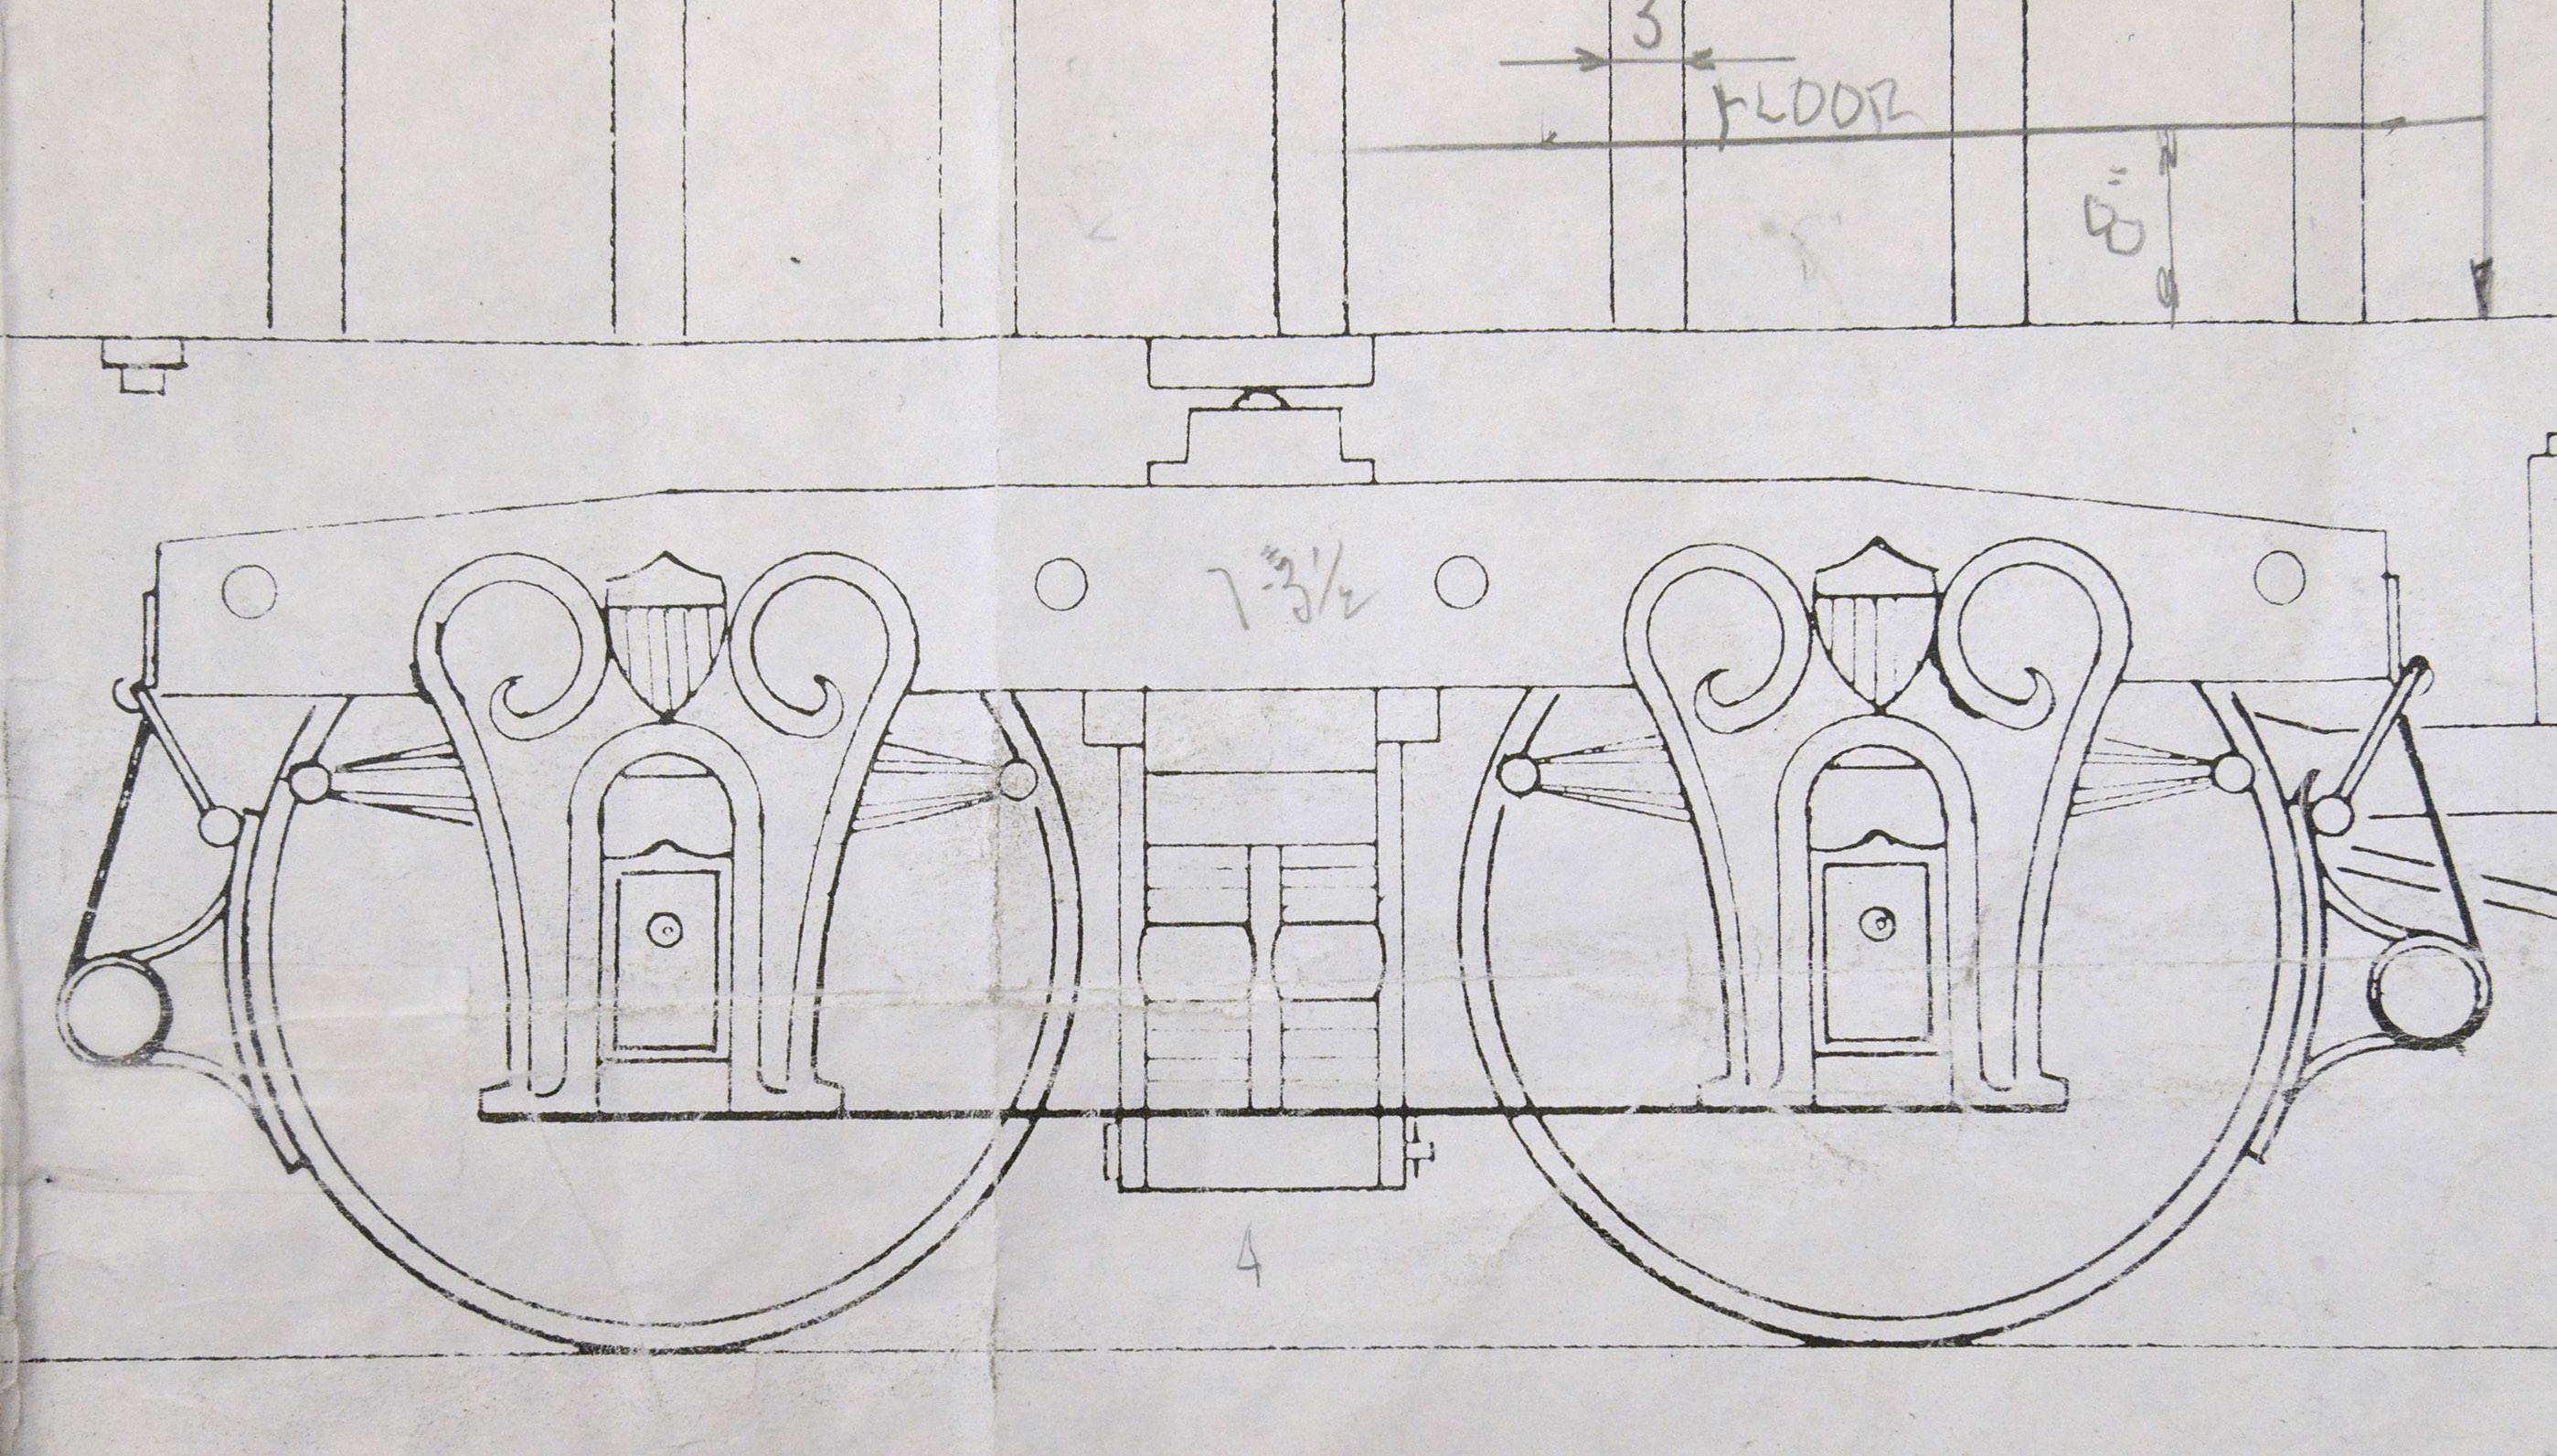 Blueprints of the Lincoln funeral train show the wheels, decorative pedestals and the hot boxes of one of the cars. David H. Kloke of Bartlett spent hours examining drawings before starting to built the car's replica in his Elgin shop.